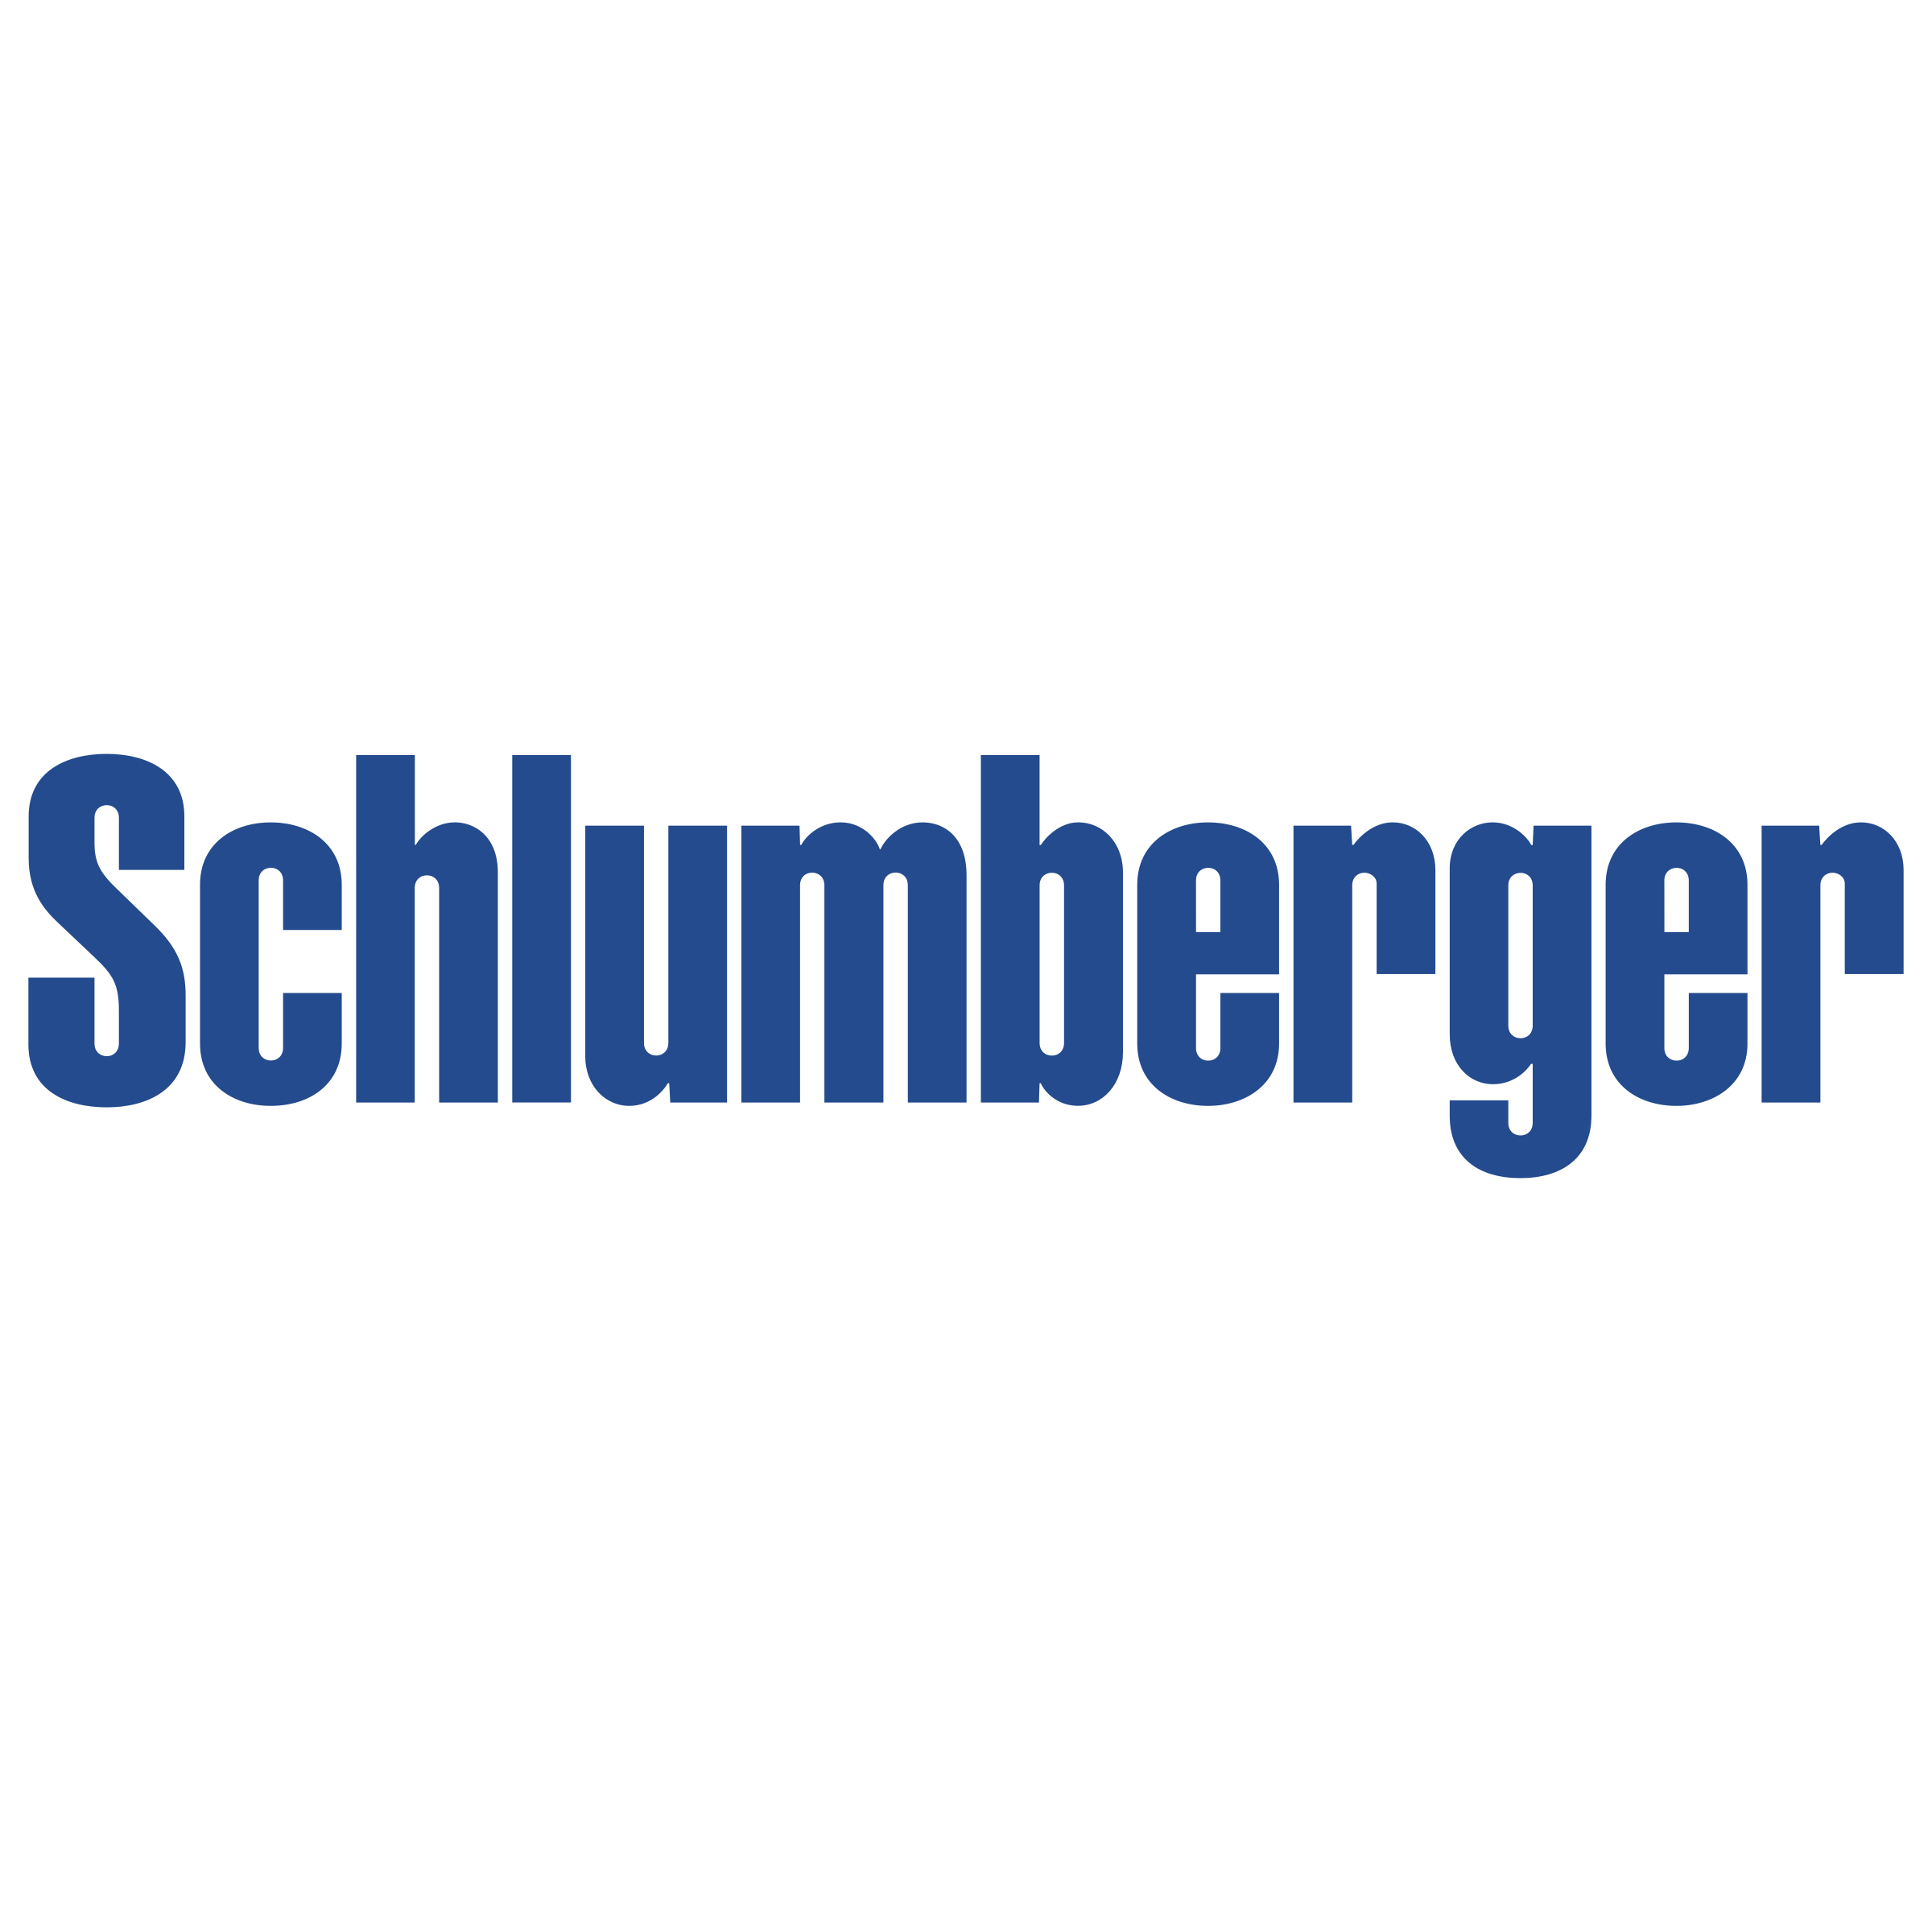 Schlumberger Logo - Schlumberger Logo PNG Transparent & SVG Vector - Freebie Supply